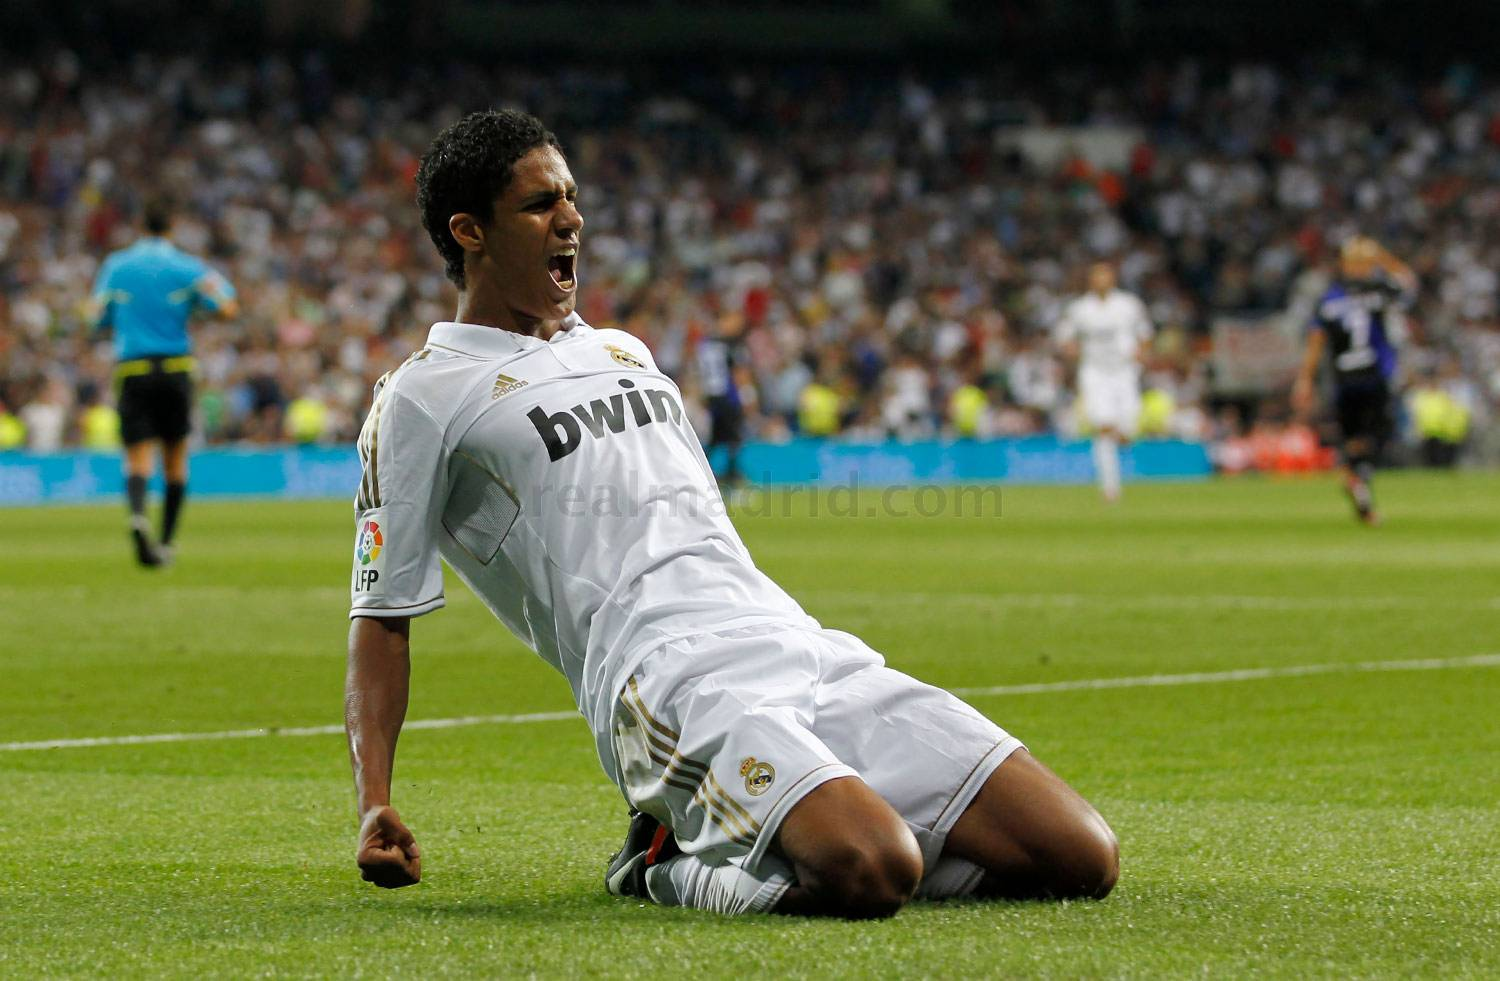 Real Madrid - Varane en el Real Madrid - 24-06-2020